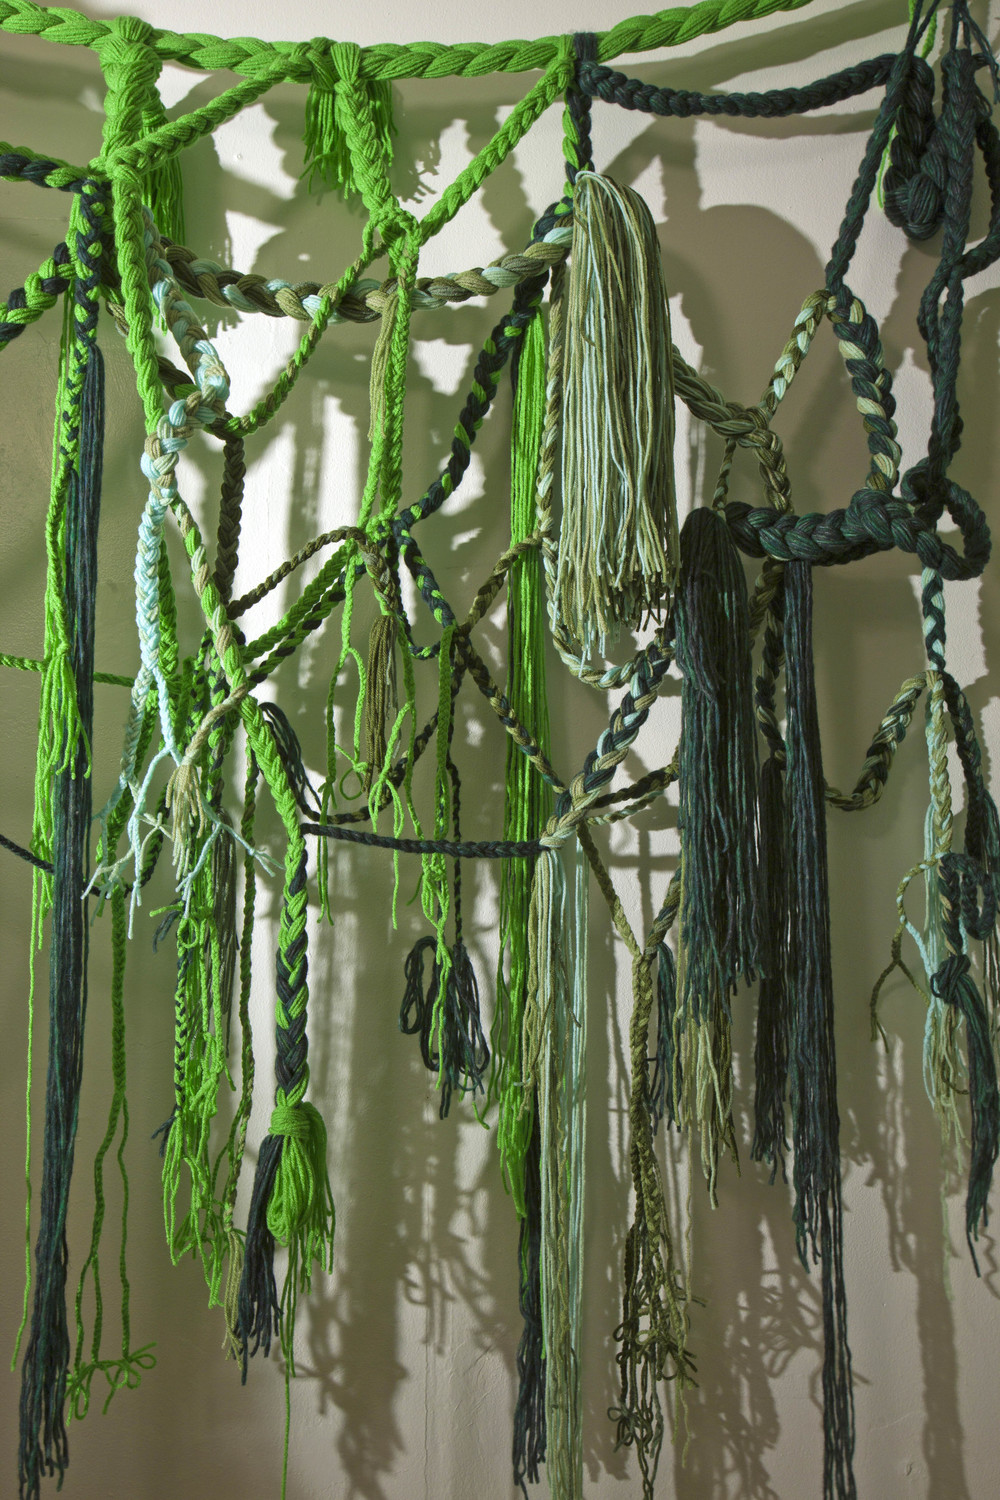 Green Piece, 2011, Acrylic yarn and tin foil, 7' x 8' x 9' (Detail)